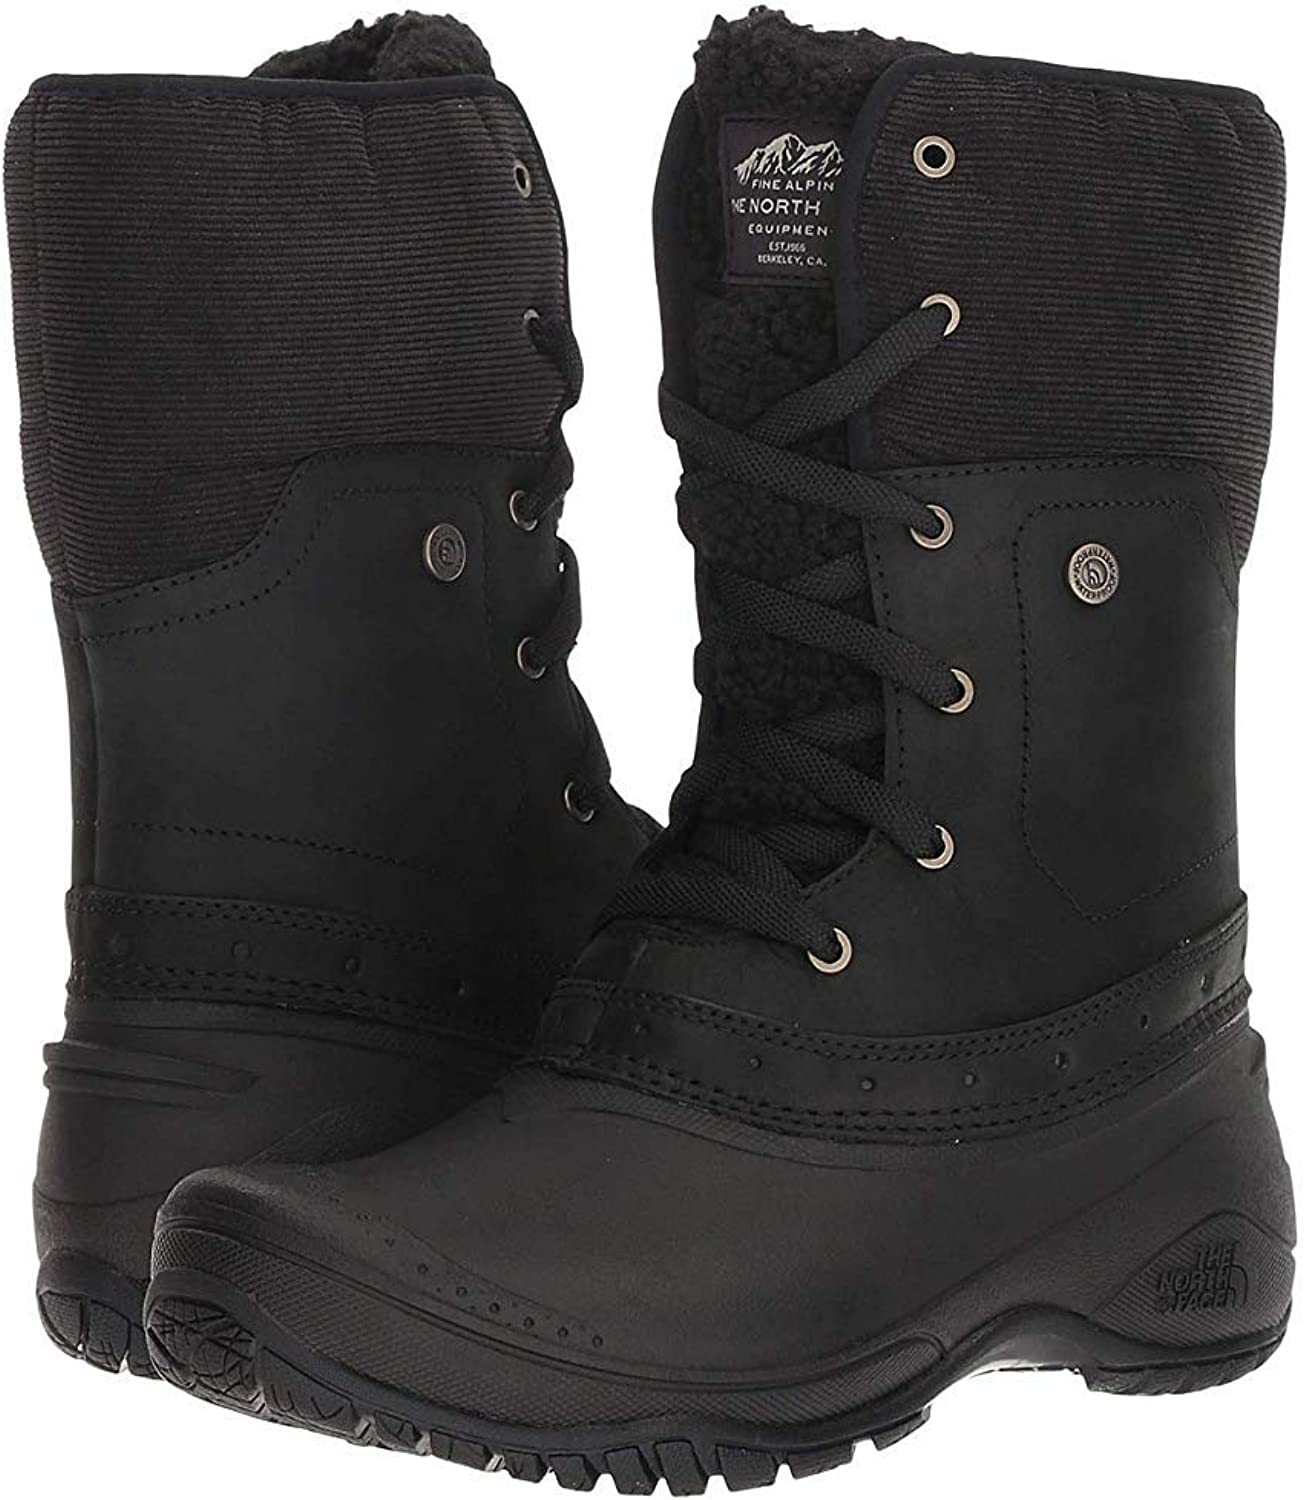 THE NORTH FACE Women's Shellista Roll Down Waterproof Boots TNF Black Weather.